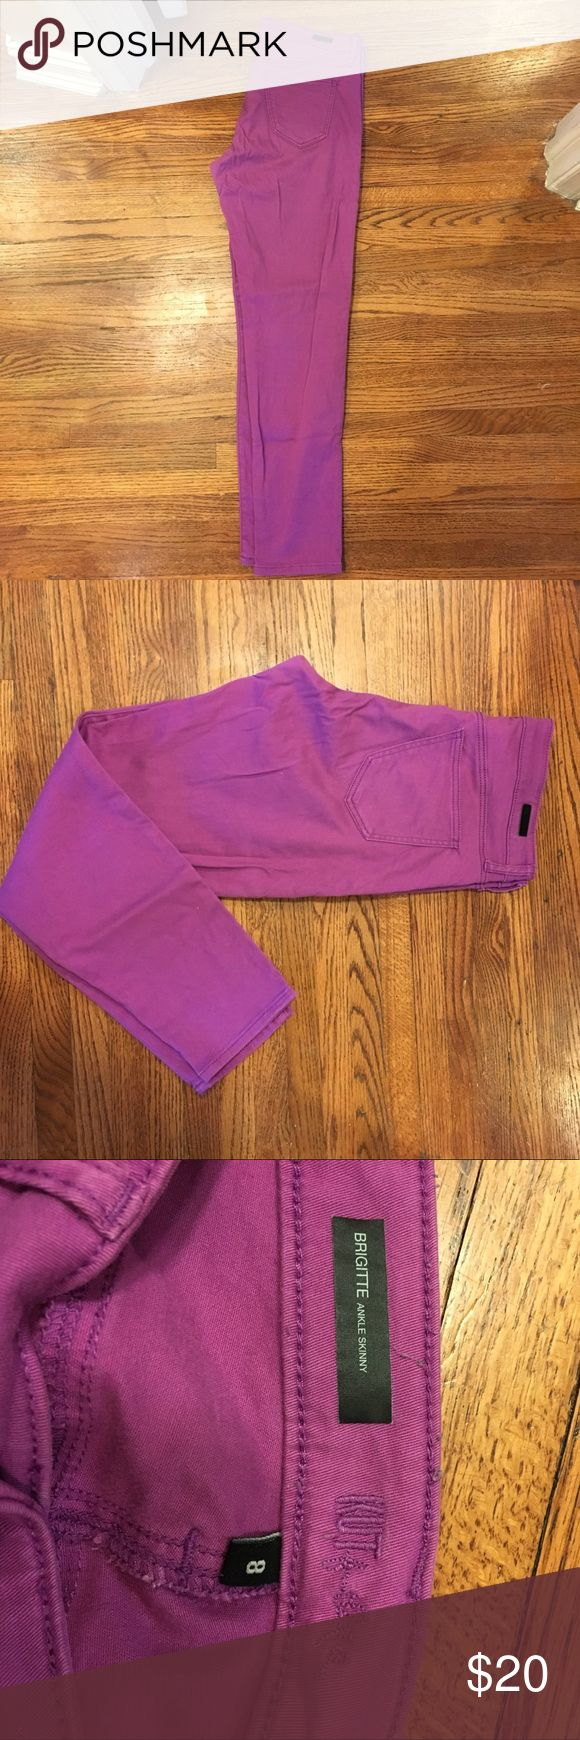 Kut from the Kloth purple skinnies. Purple/magenta Kut from the Kloth ankle length skinnies. Great color for summer! Excellent condition. Size 8. 98% cotton and 2% spandex. Kut from the Kloth Pants Skinny